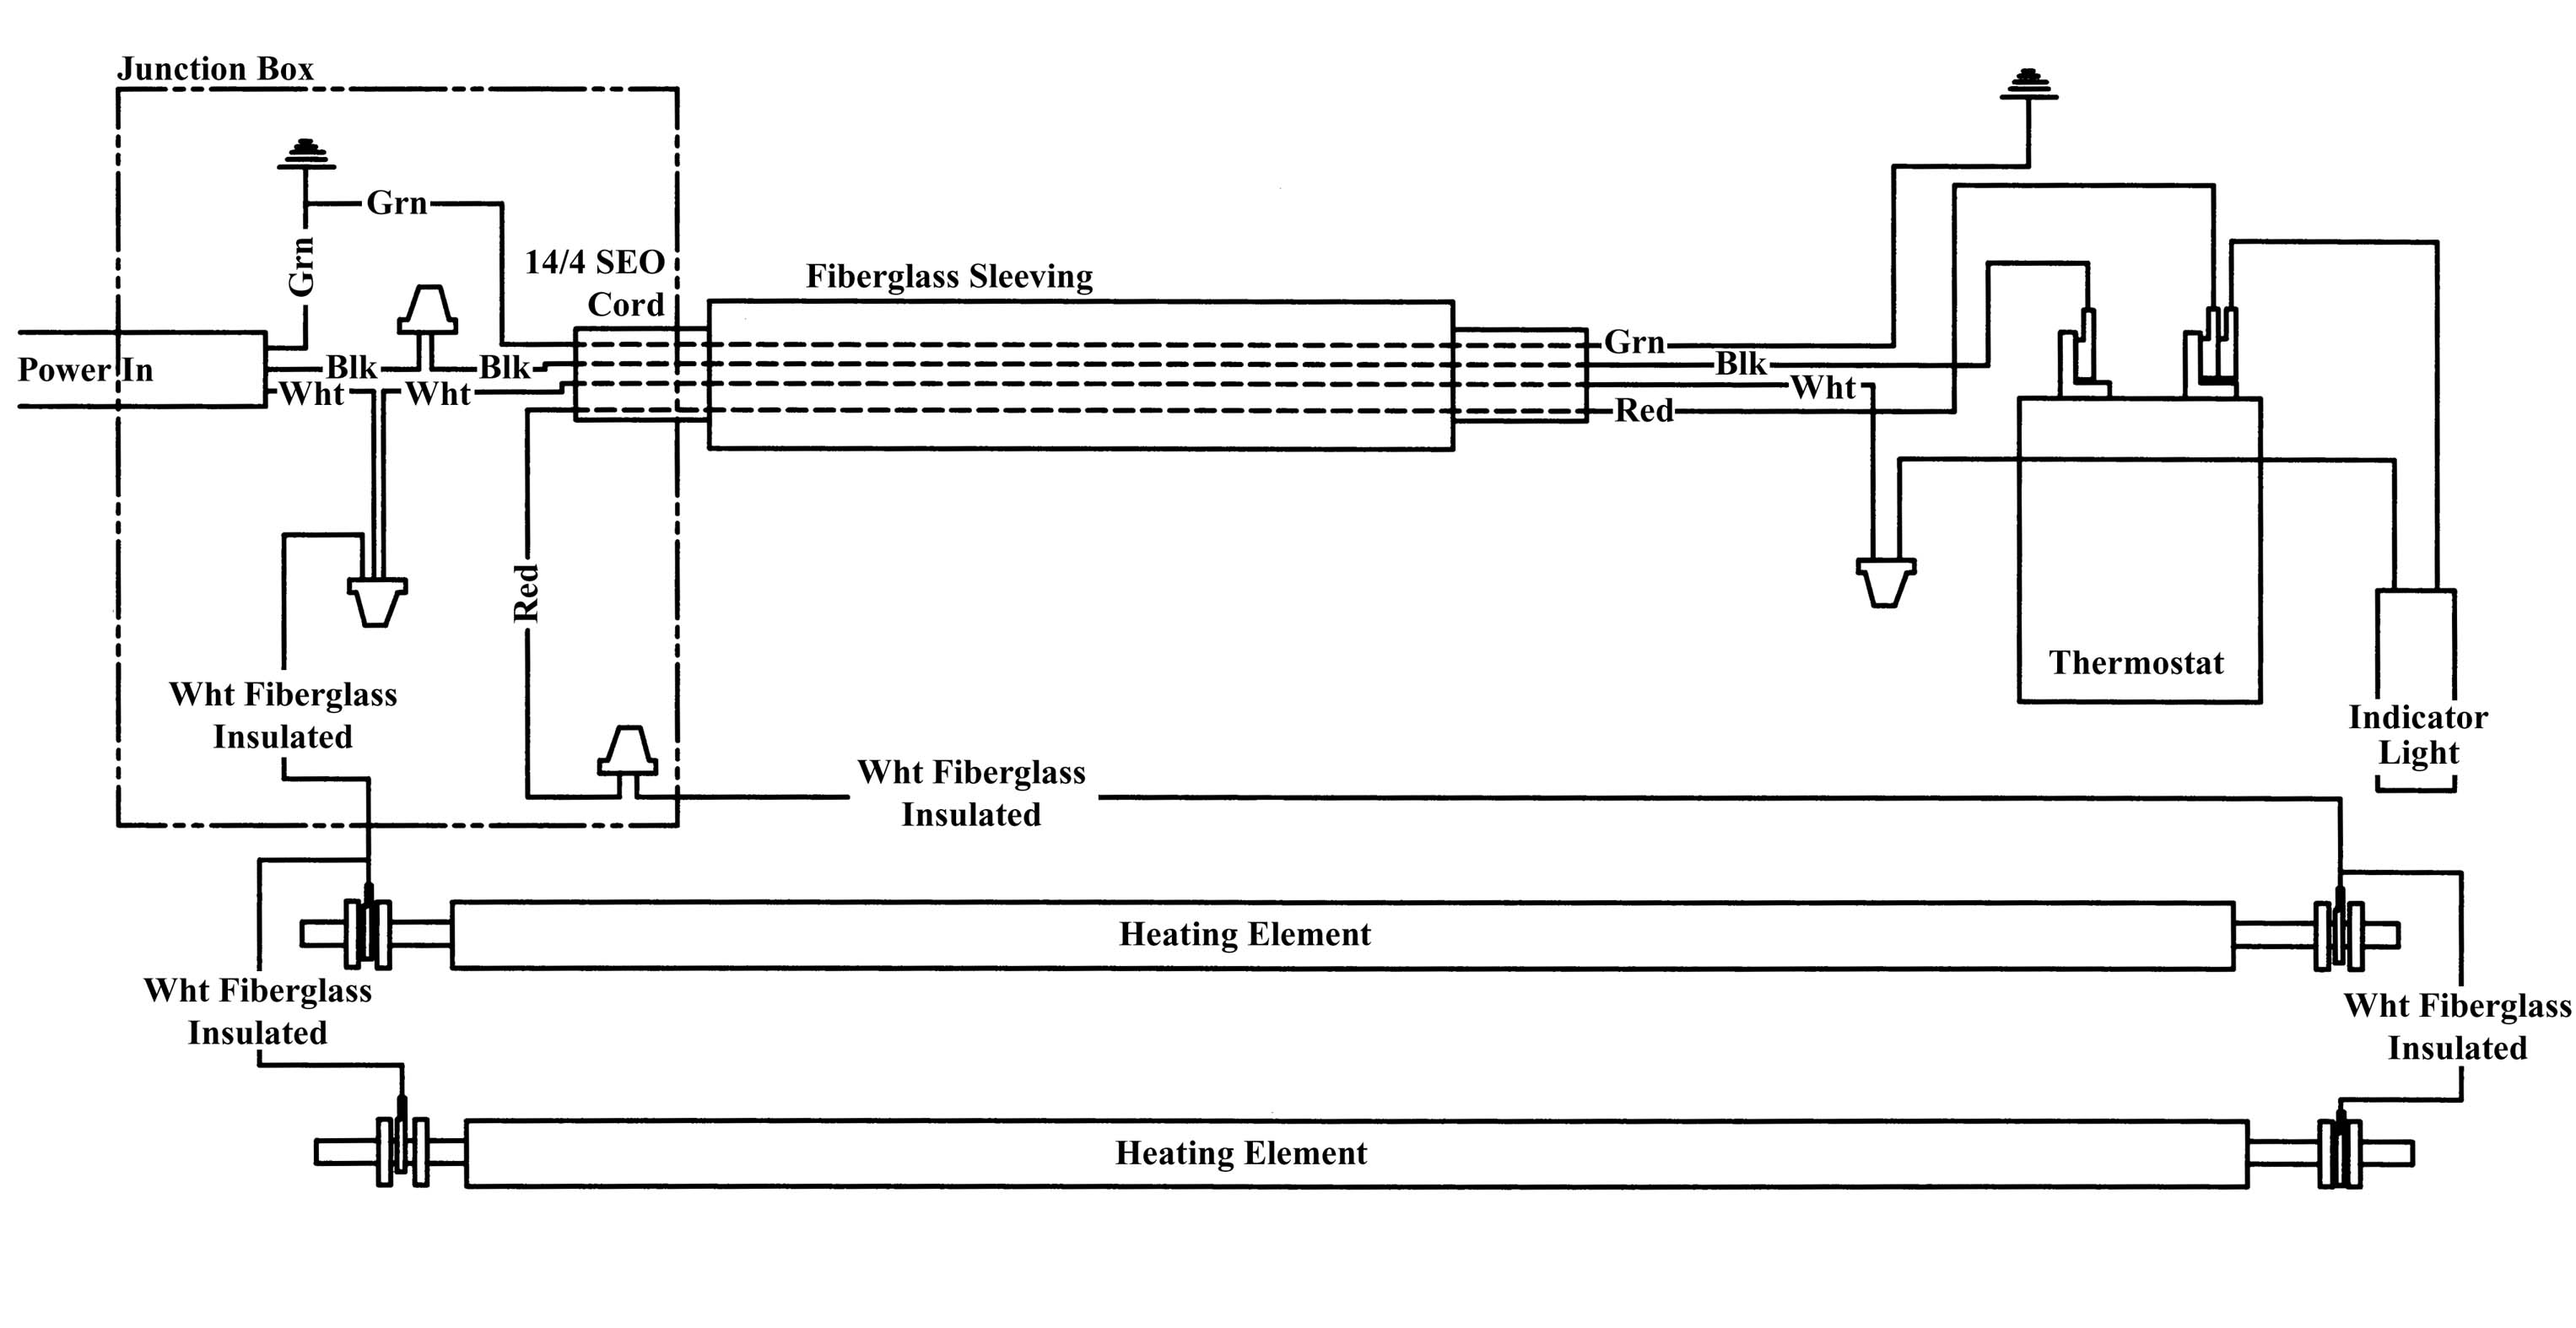 Heating Element Wiring Diagram from www.dryrod.com